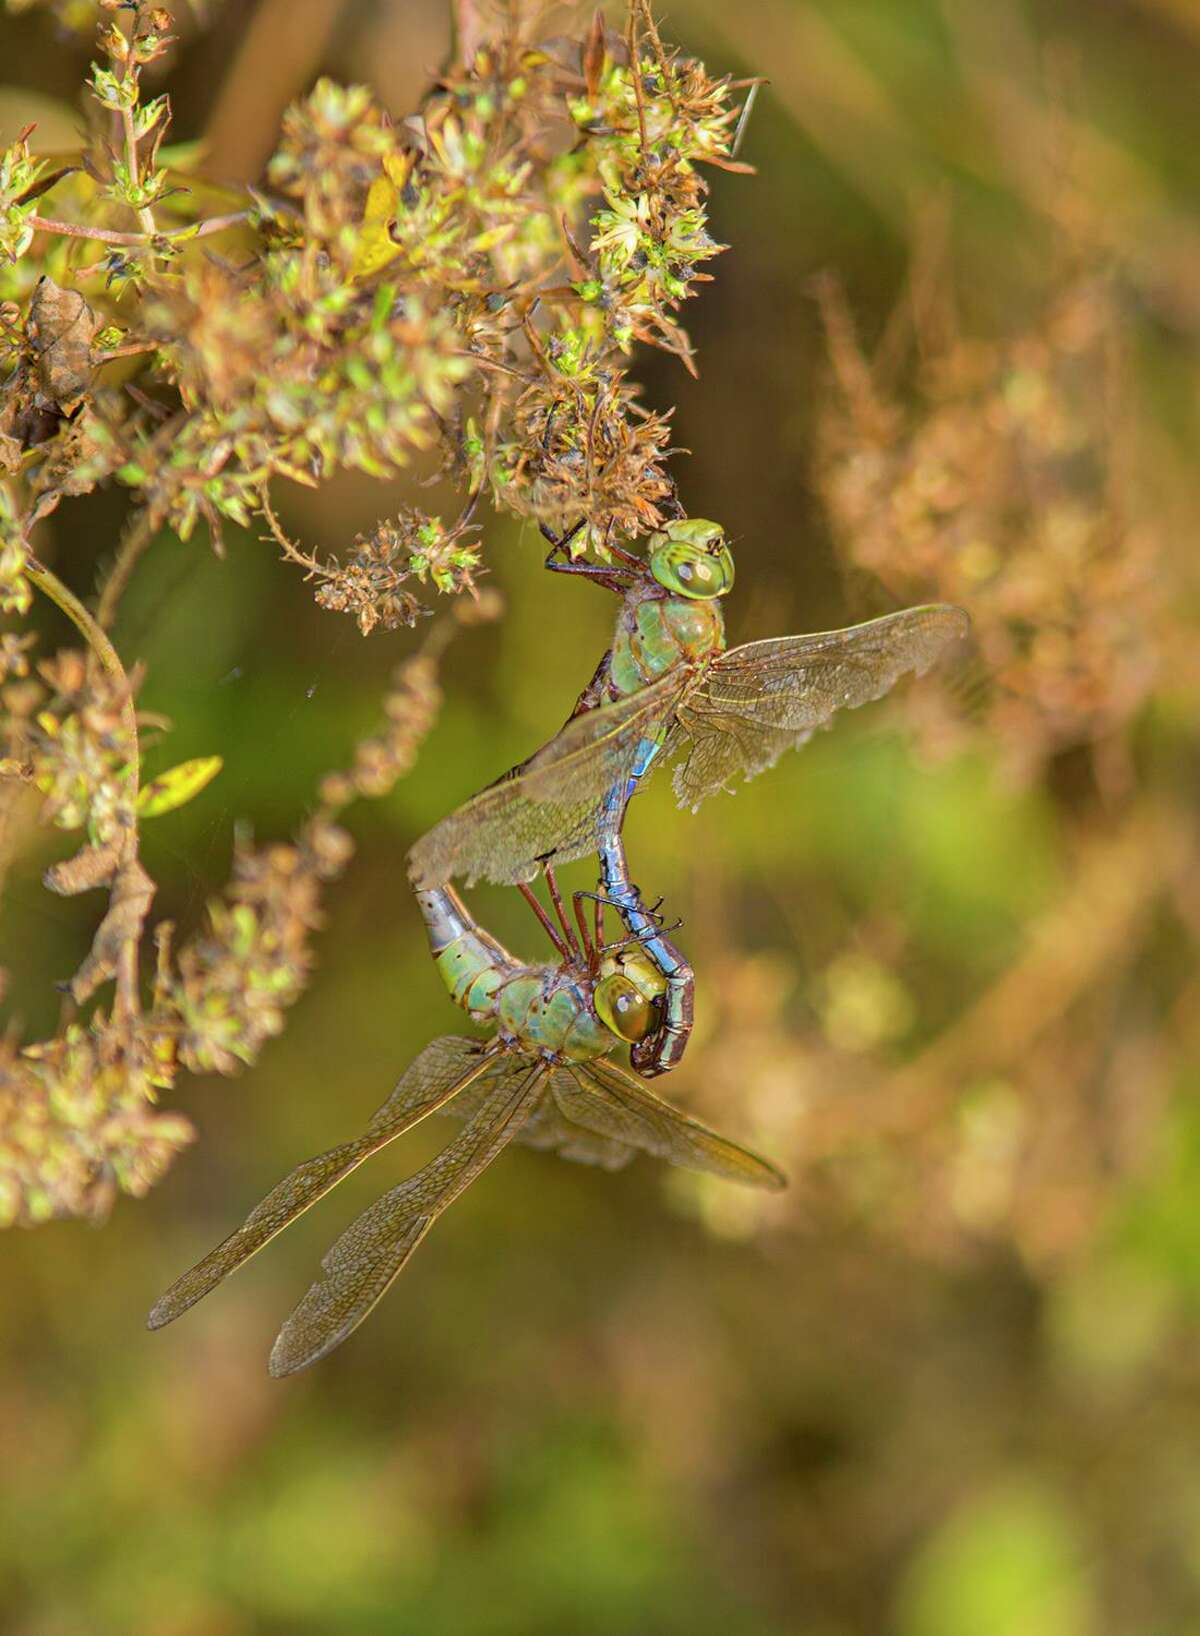 Dragonflies, like these common green darners, form a heart shape or wheel when they mate.